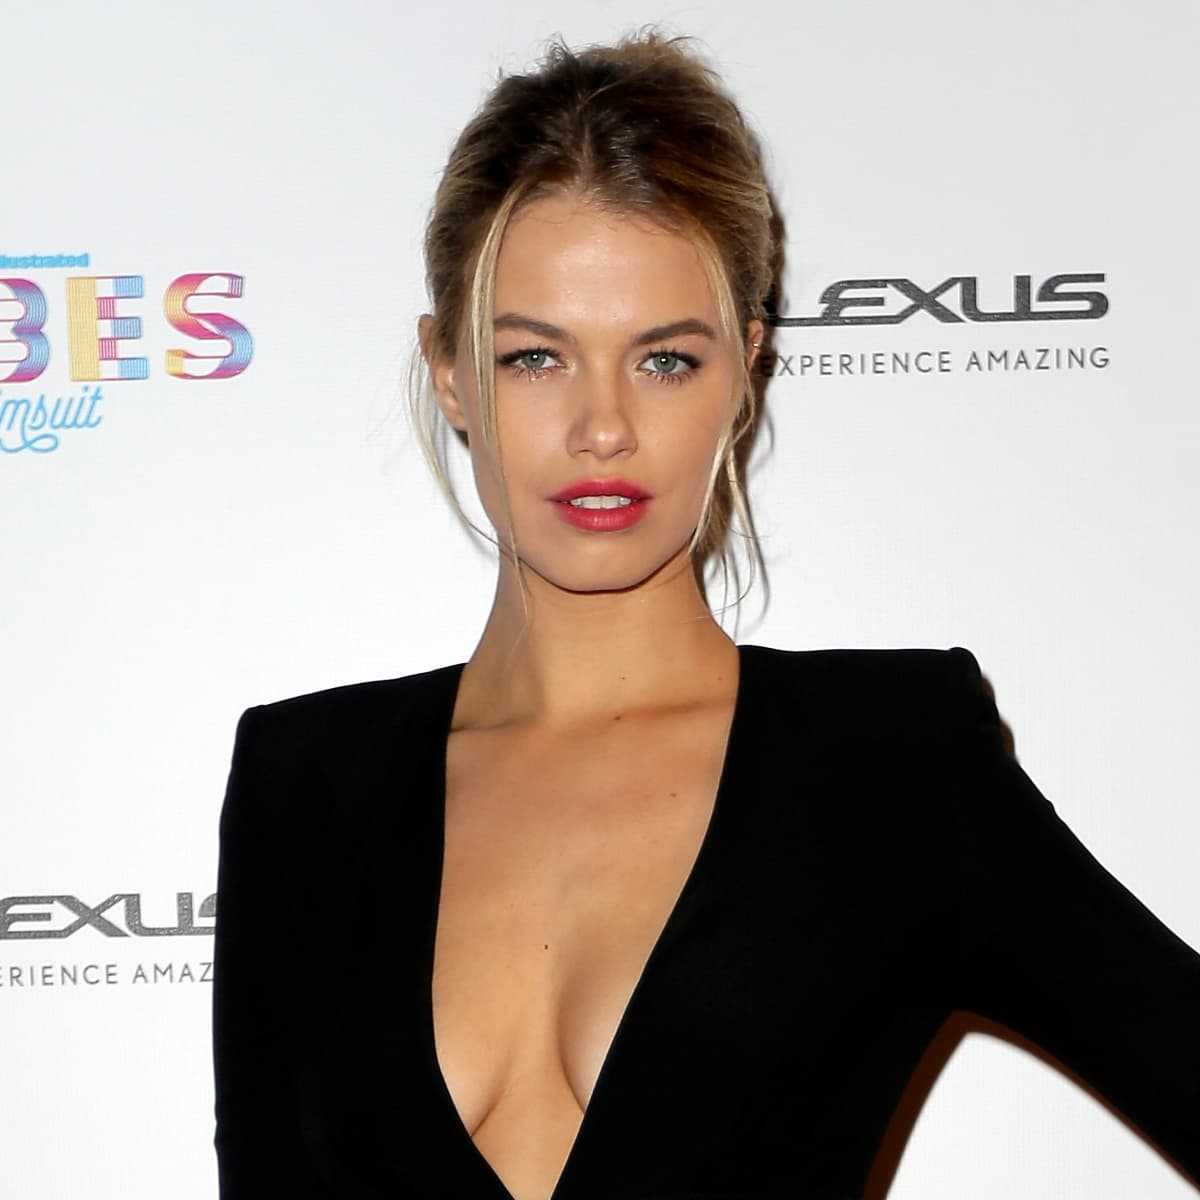 Houston, VIBES by Sports Illustrated Swimsuit, feb 2017, Hailey Clauson